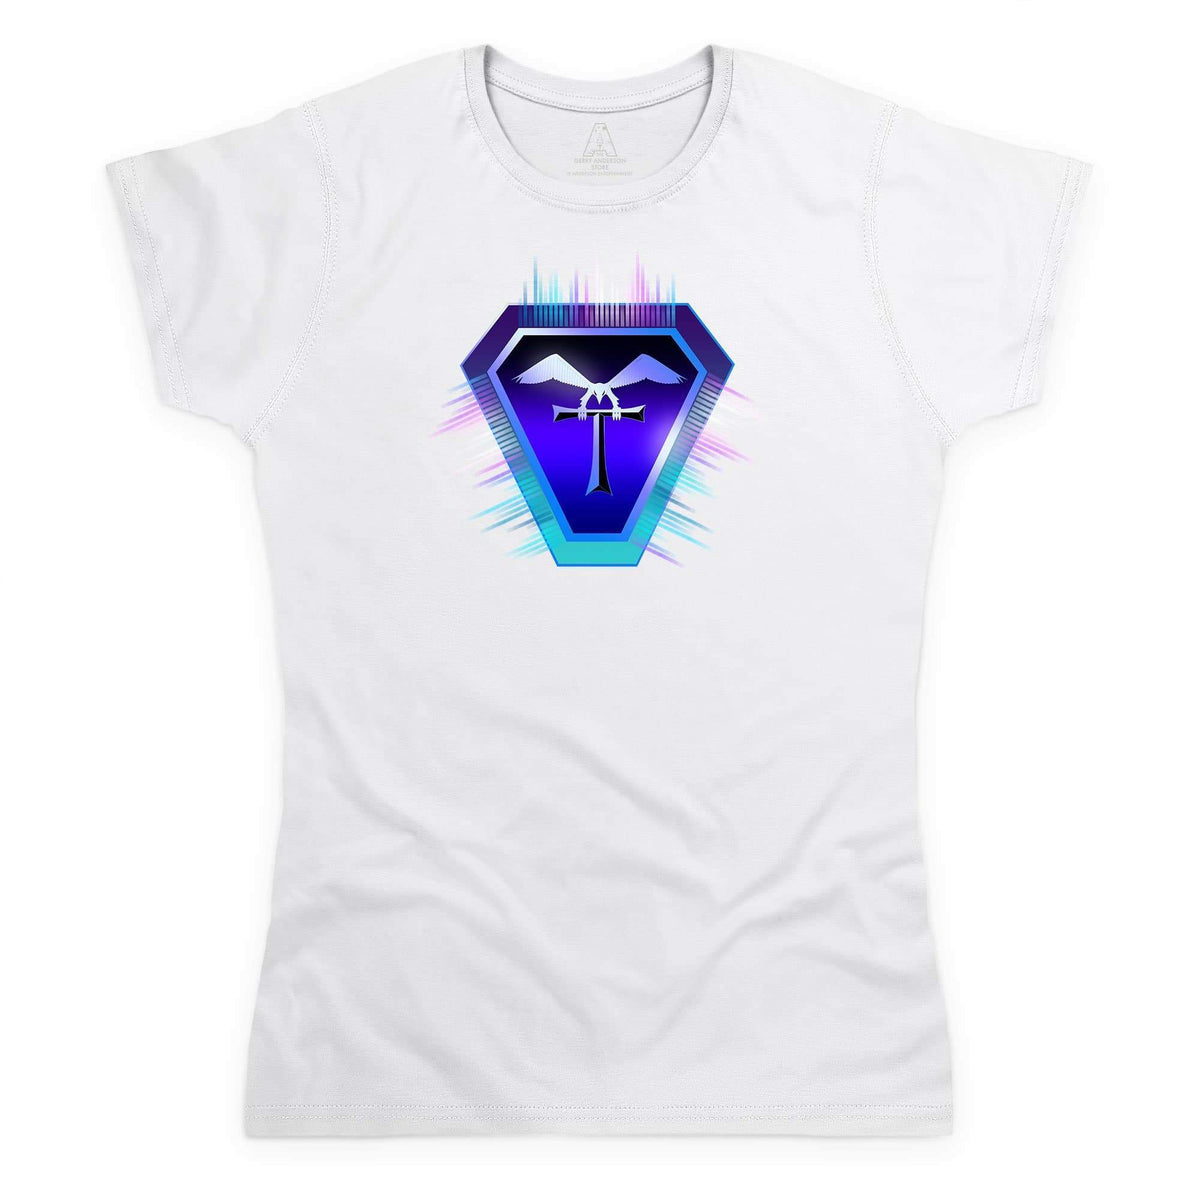 Terrahawks Neon Logo Women's White T-Shirt [Official & Exclusive] - The Gerry Anderson Store